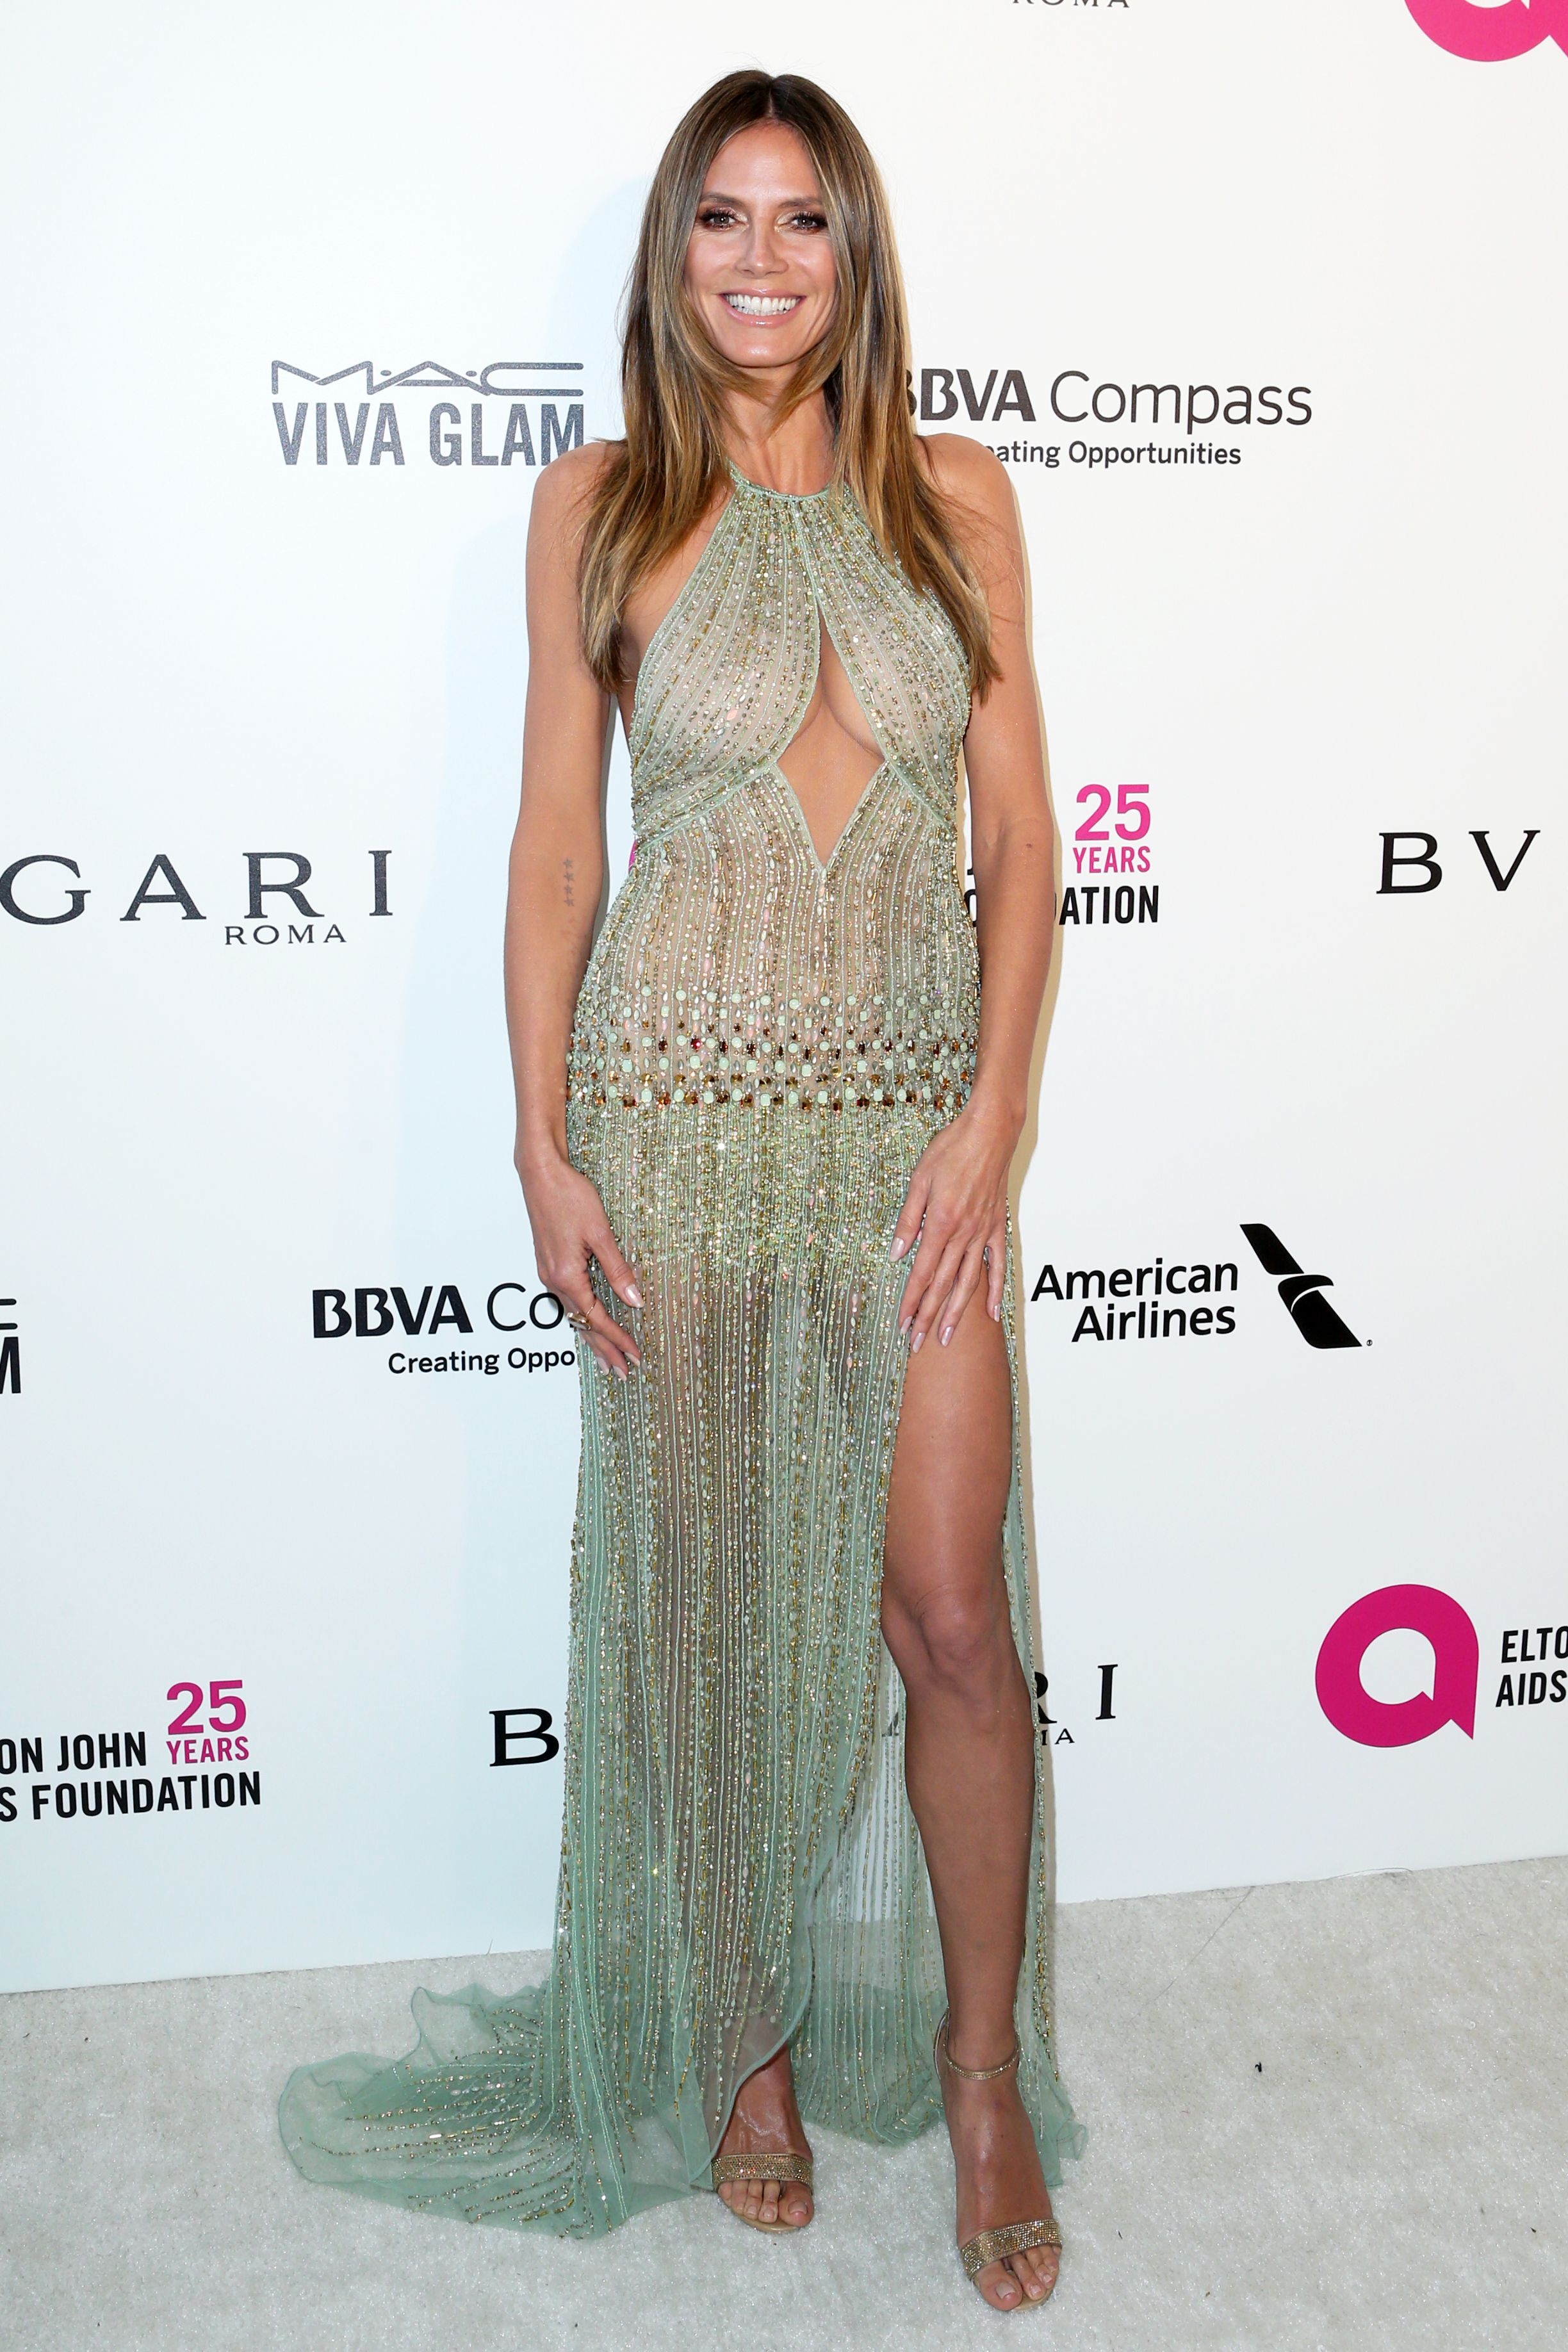 Heidi Klum Elton John AIDS Foundation Academy Awards Viewing Party, Arrivals, Los Angeles, USA - 04 Mar 2018WEARING GEORGES HOBEIKA SAME OUTFIT AS CATWALK MODEL *9330490ae